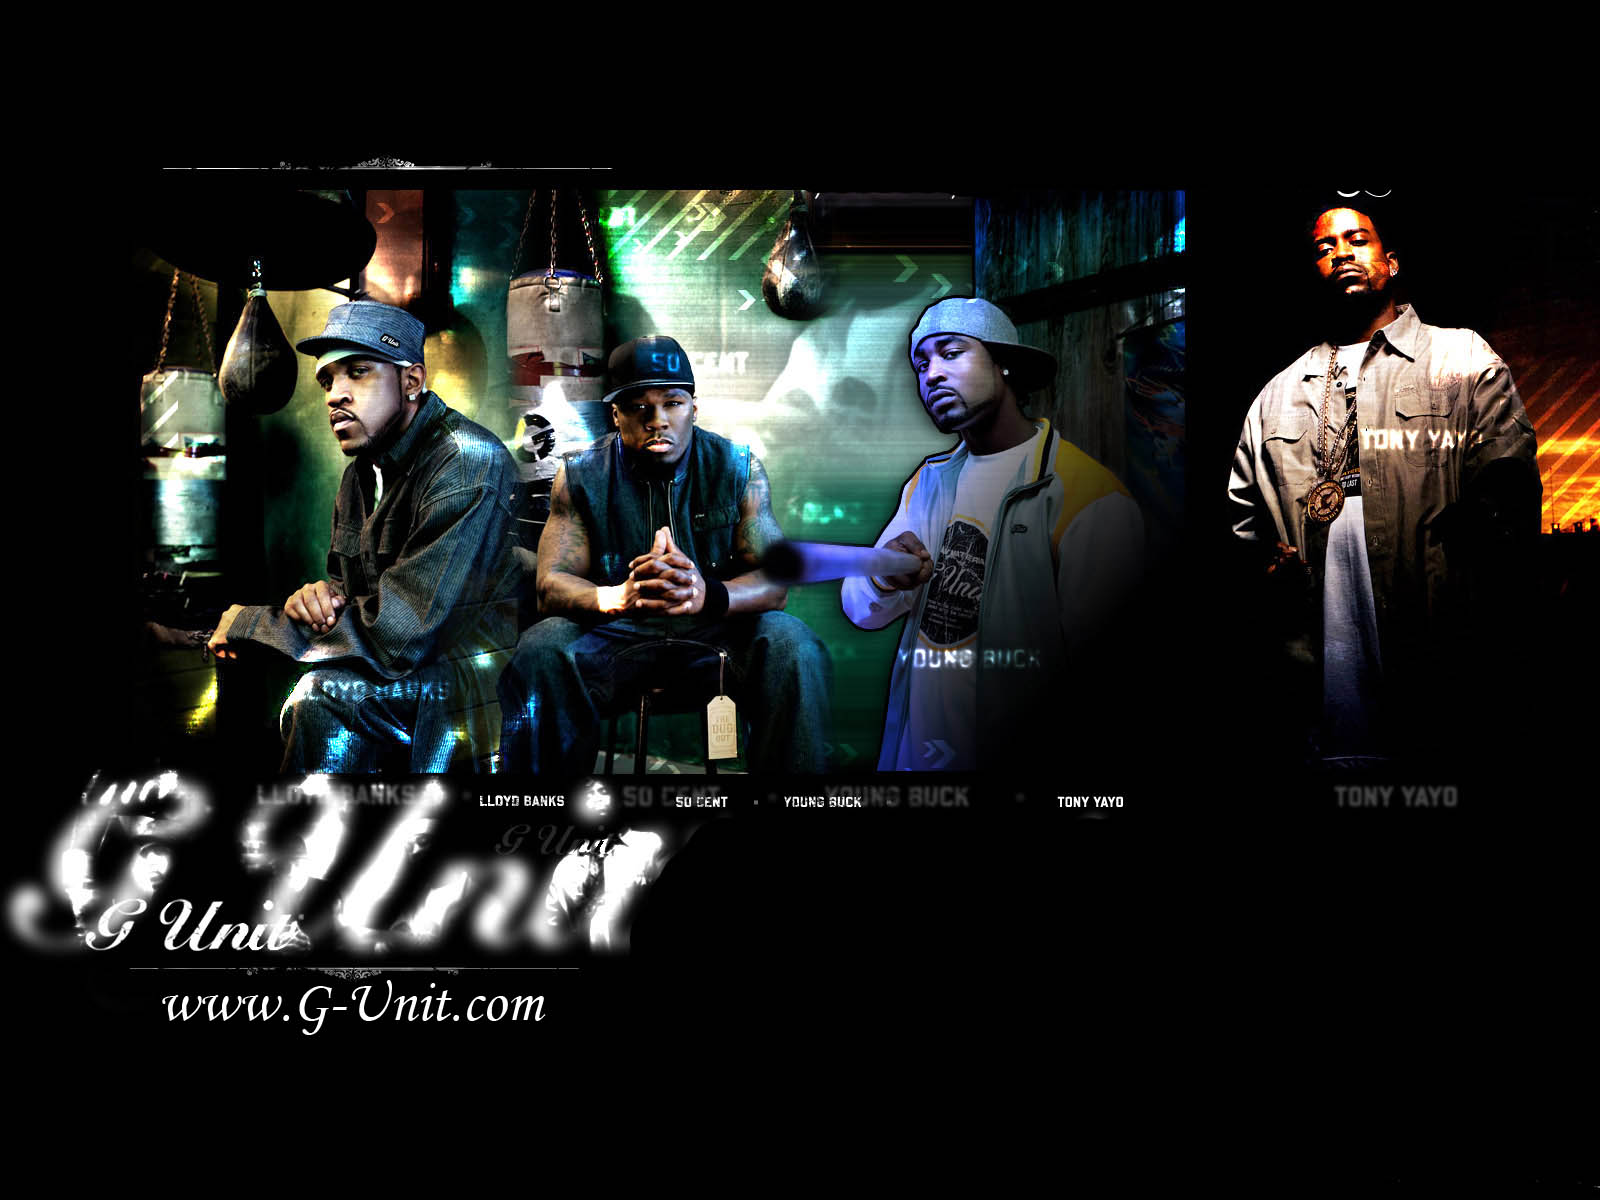 UNIT 50 CENT gangsta rap rapper hip hop unit cent poster hr 1600x1200